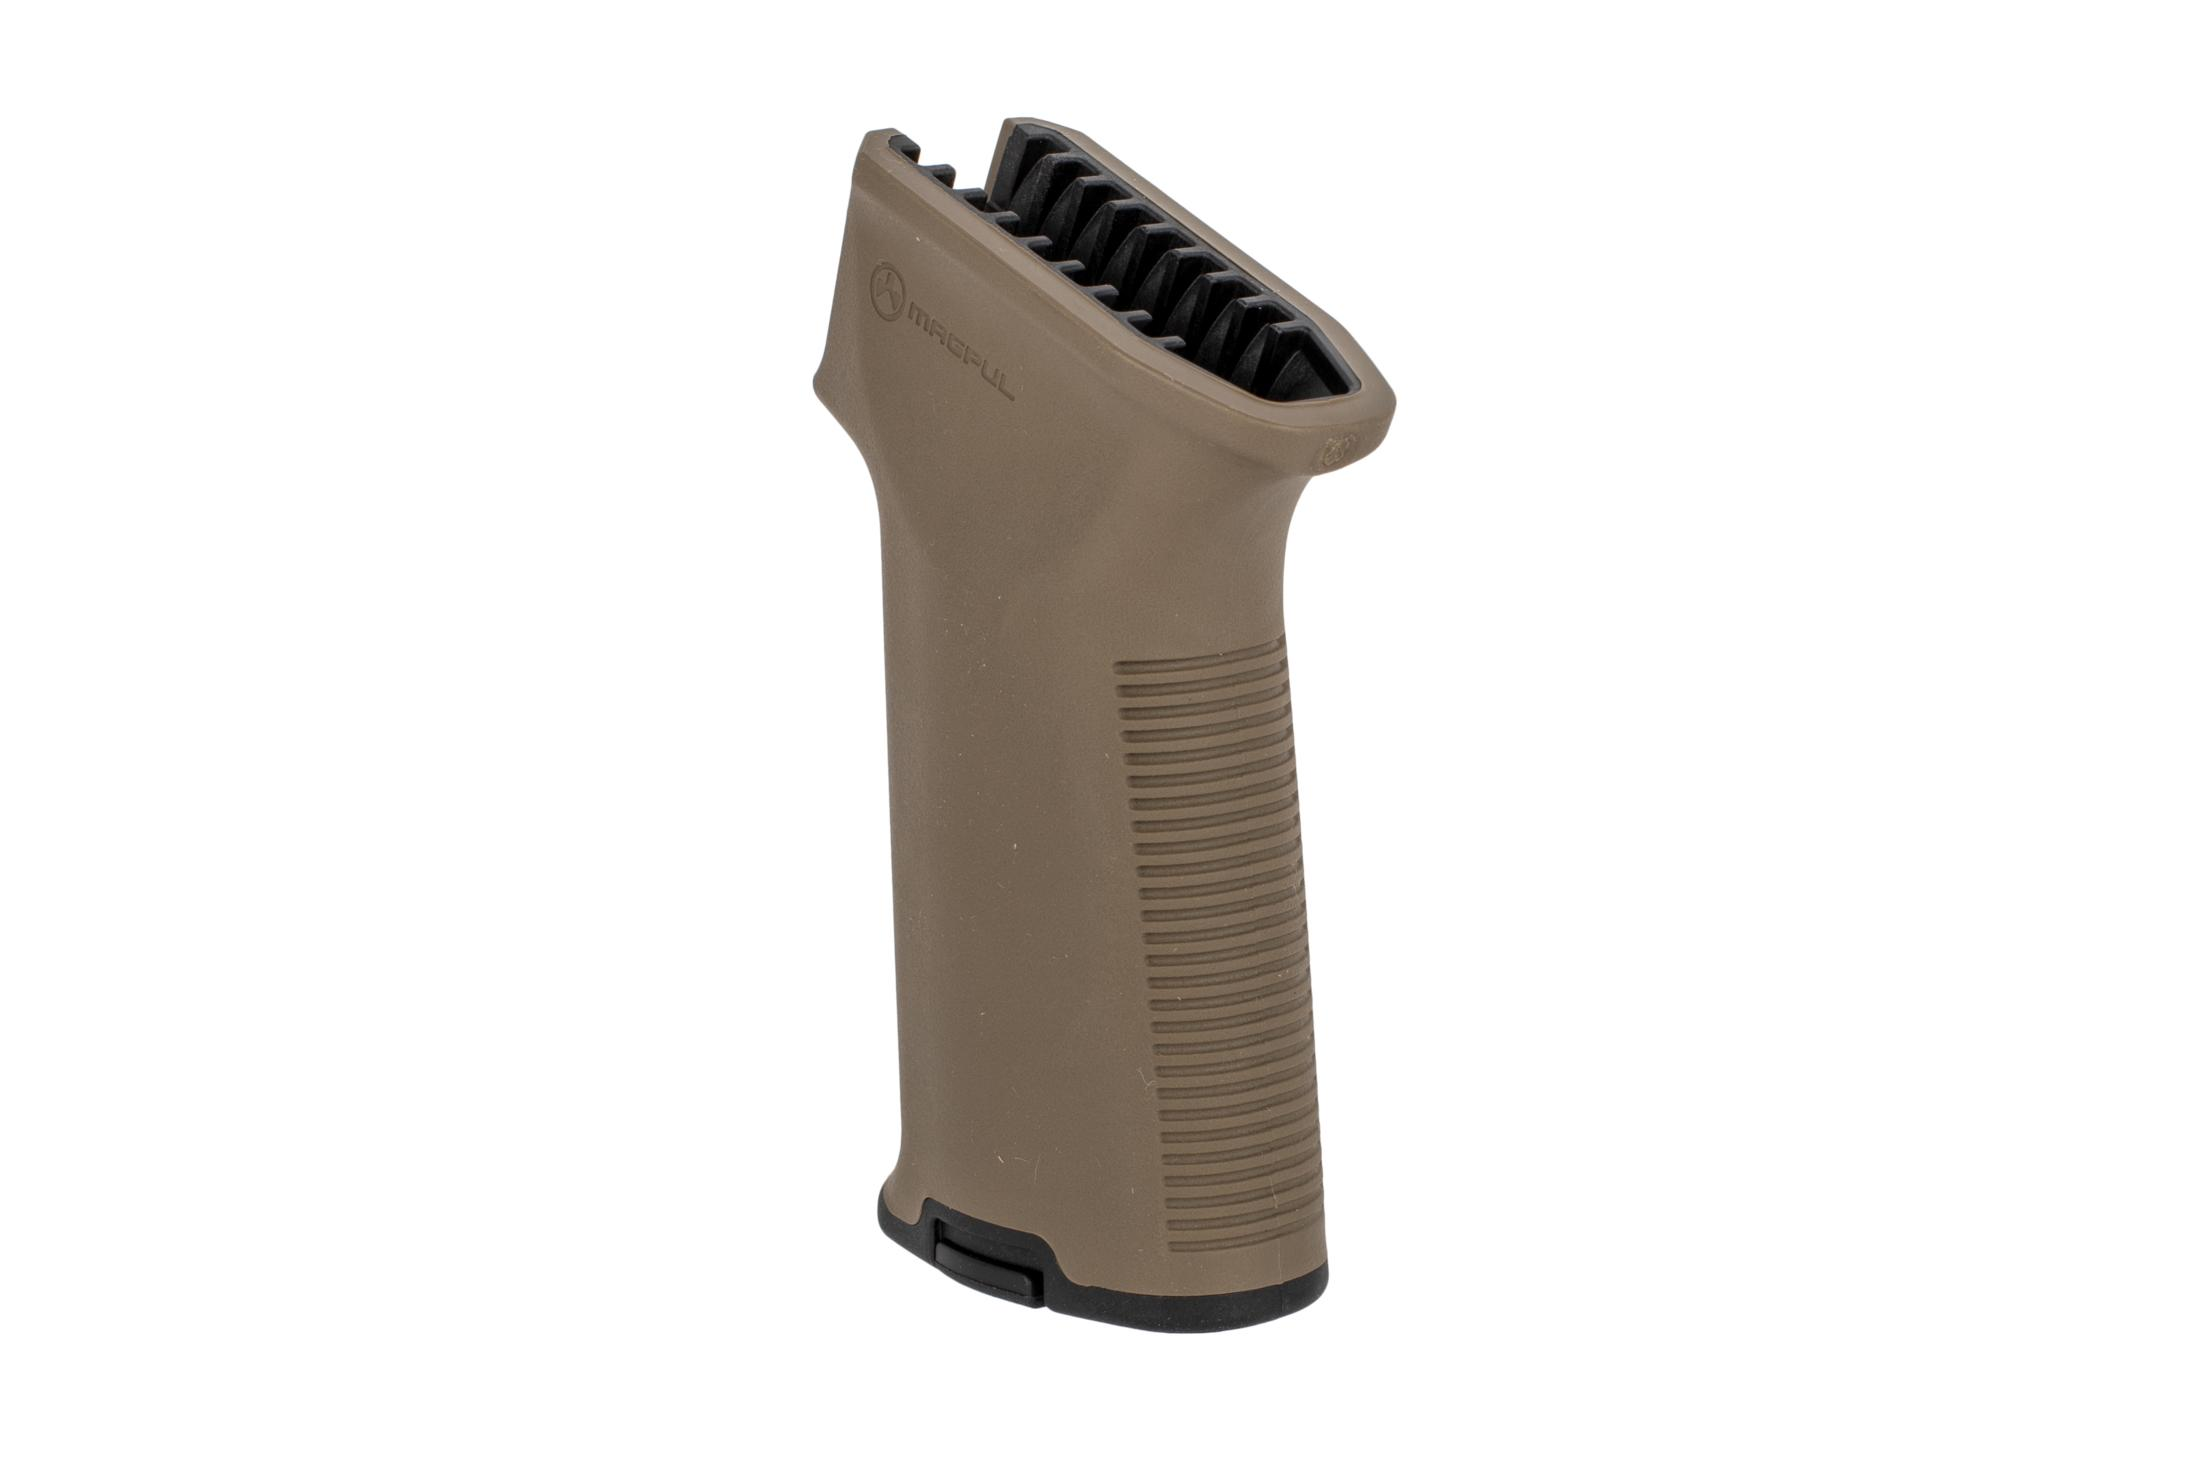 Magpul MOE+ AK-47/74 Pistol Grip - Flat Dark Earth